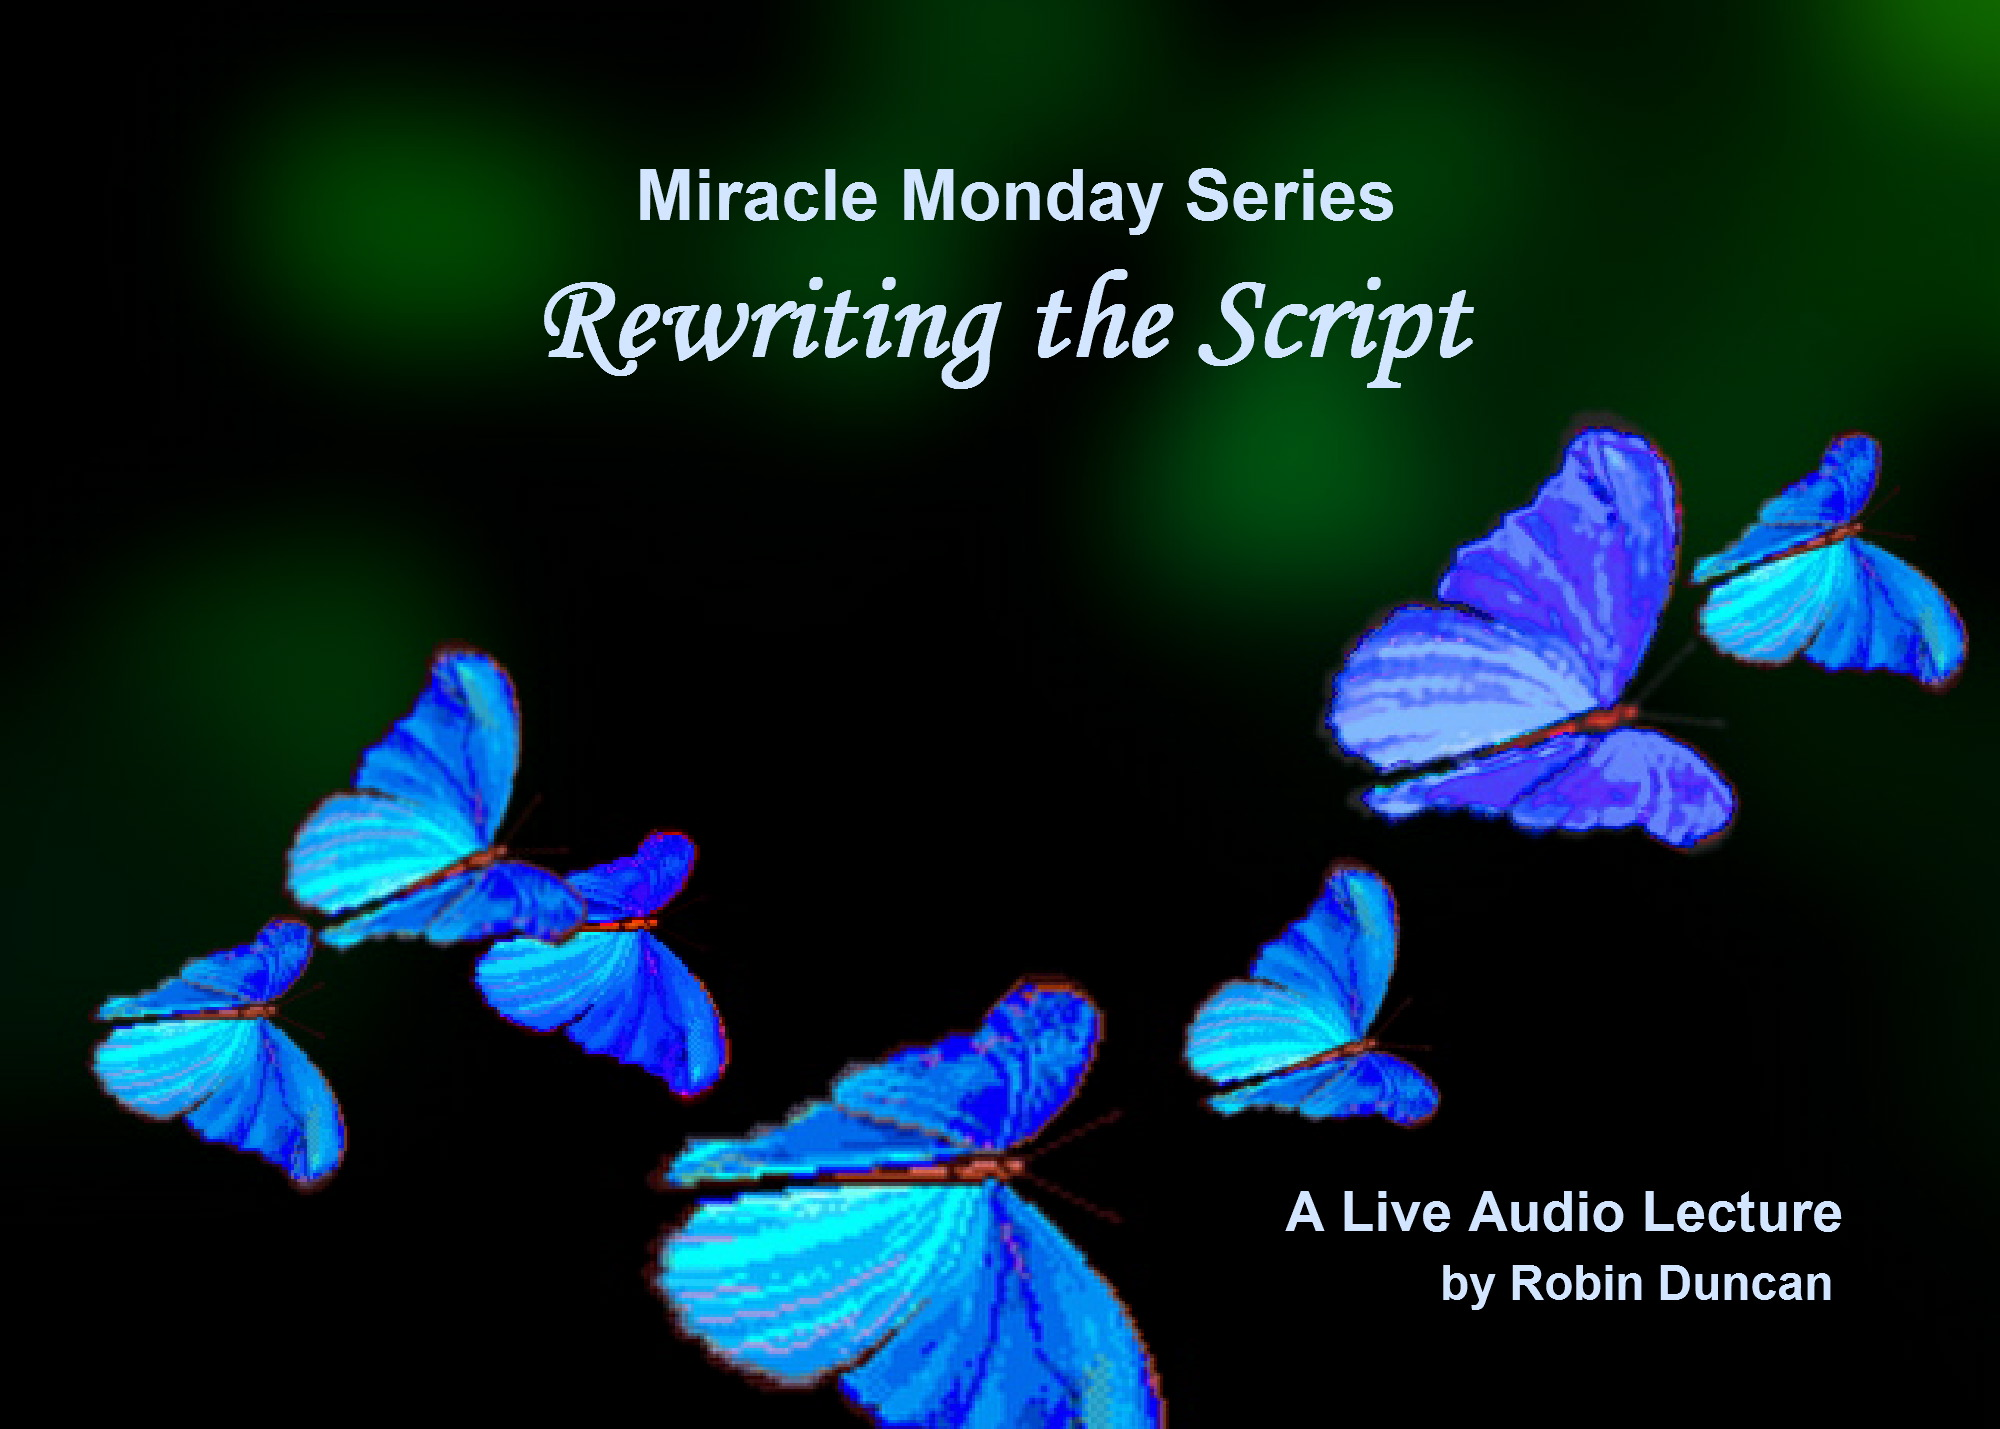 Rewriting the Script how to start over, a miracle, Miracle Monday, Audio, Lecture, Audio Lecture, Robin Duncan, Miracle Center Ca, In miracles, ACIM, What is Acim,